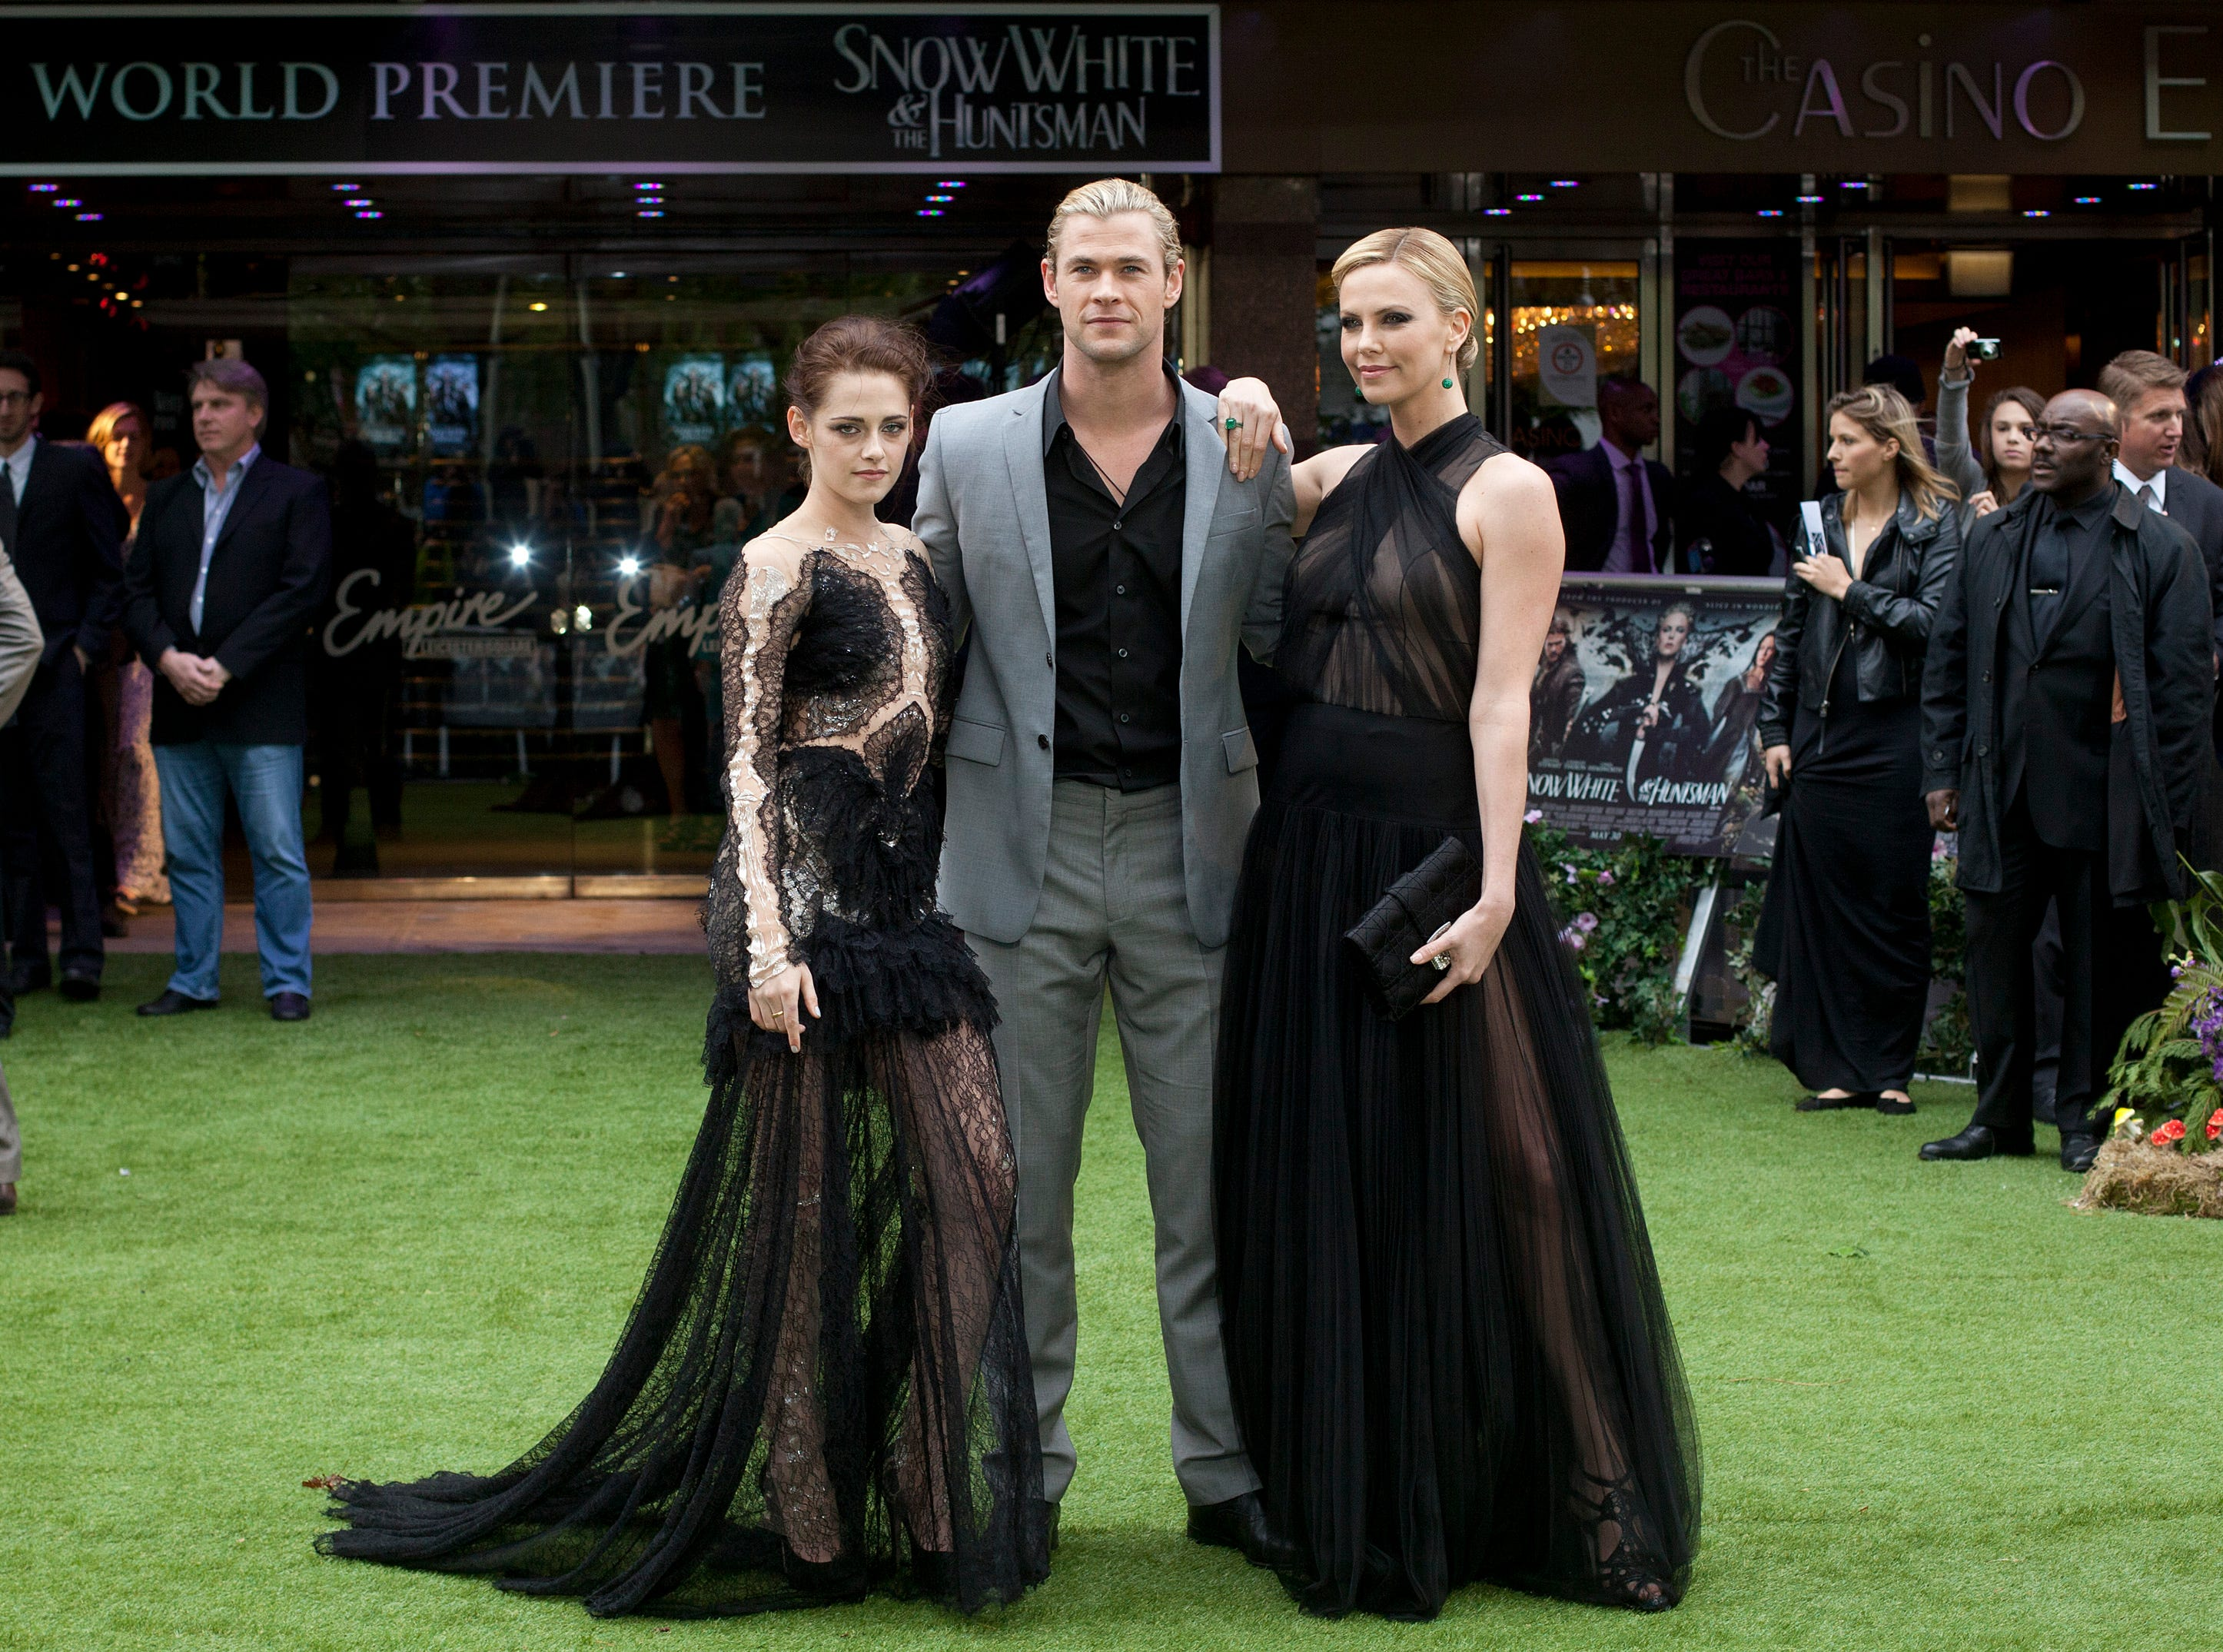 ORG XMIT: XAG113 Actors Kristen Stewart, left, with Charlize Theron, right and Chris Hemsworth pose for the media at the World Premiere of the film Snow White and the Huntsman at a cinema in central London, Monday, May 14, 2012. (AP Photo/Alastair Grant)